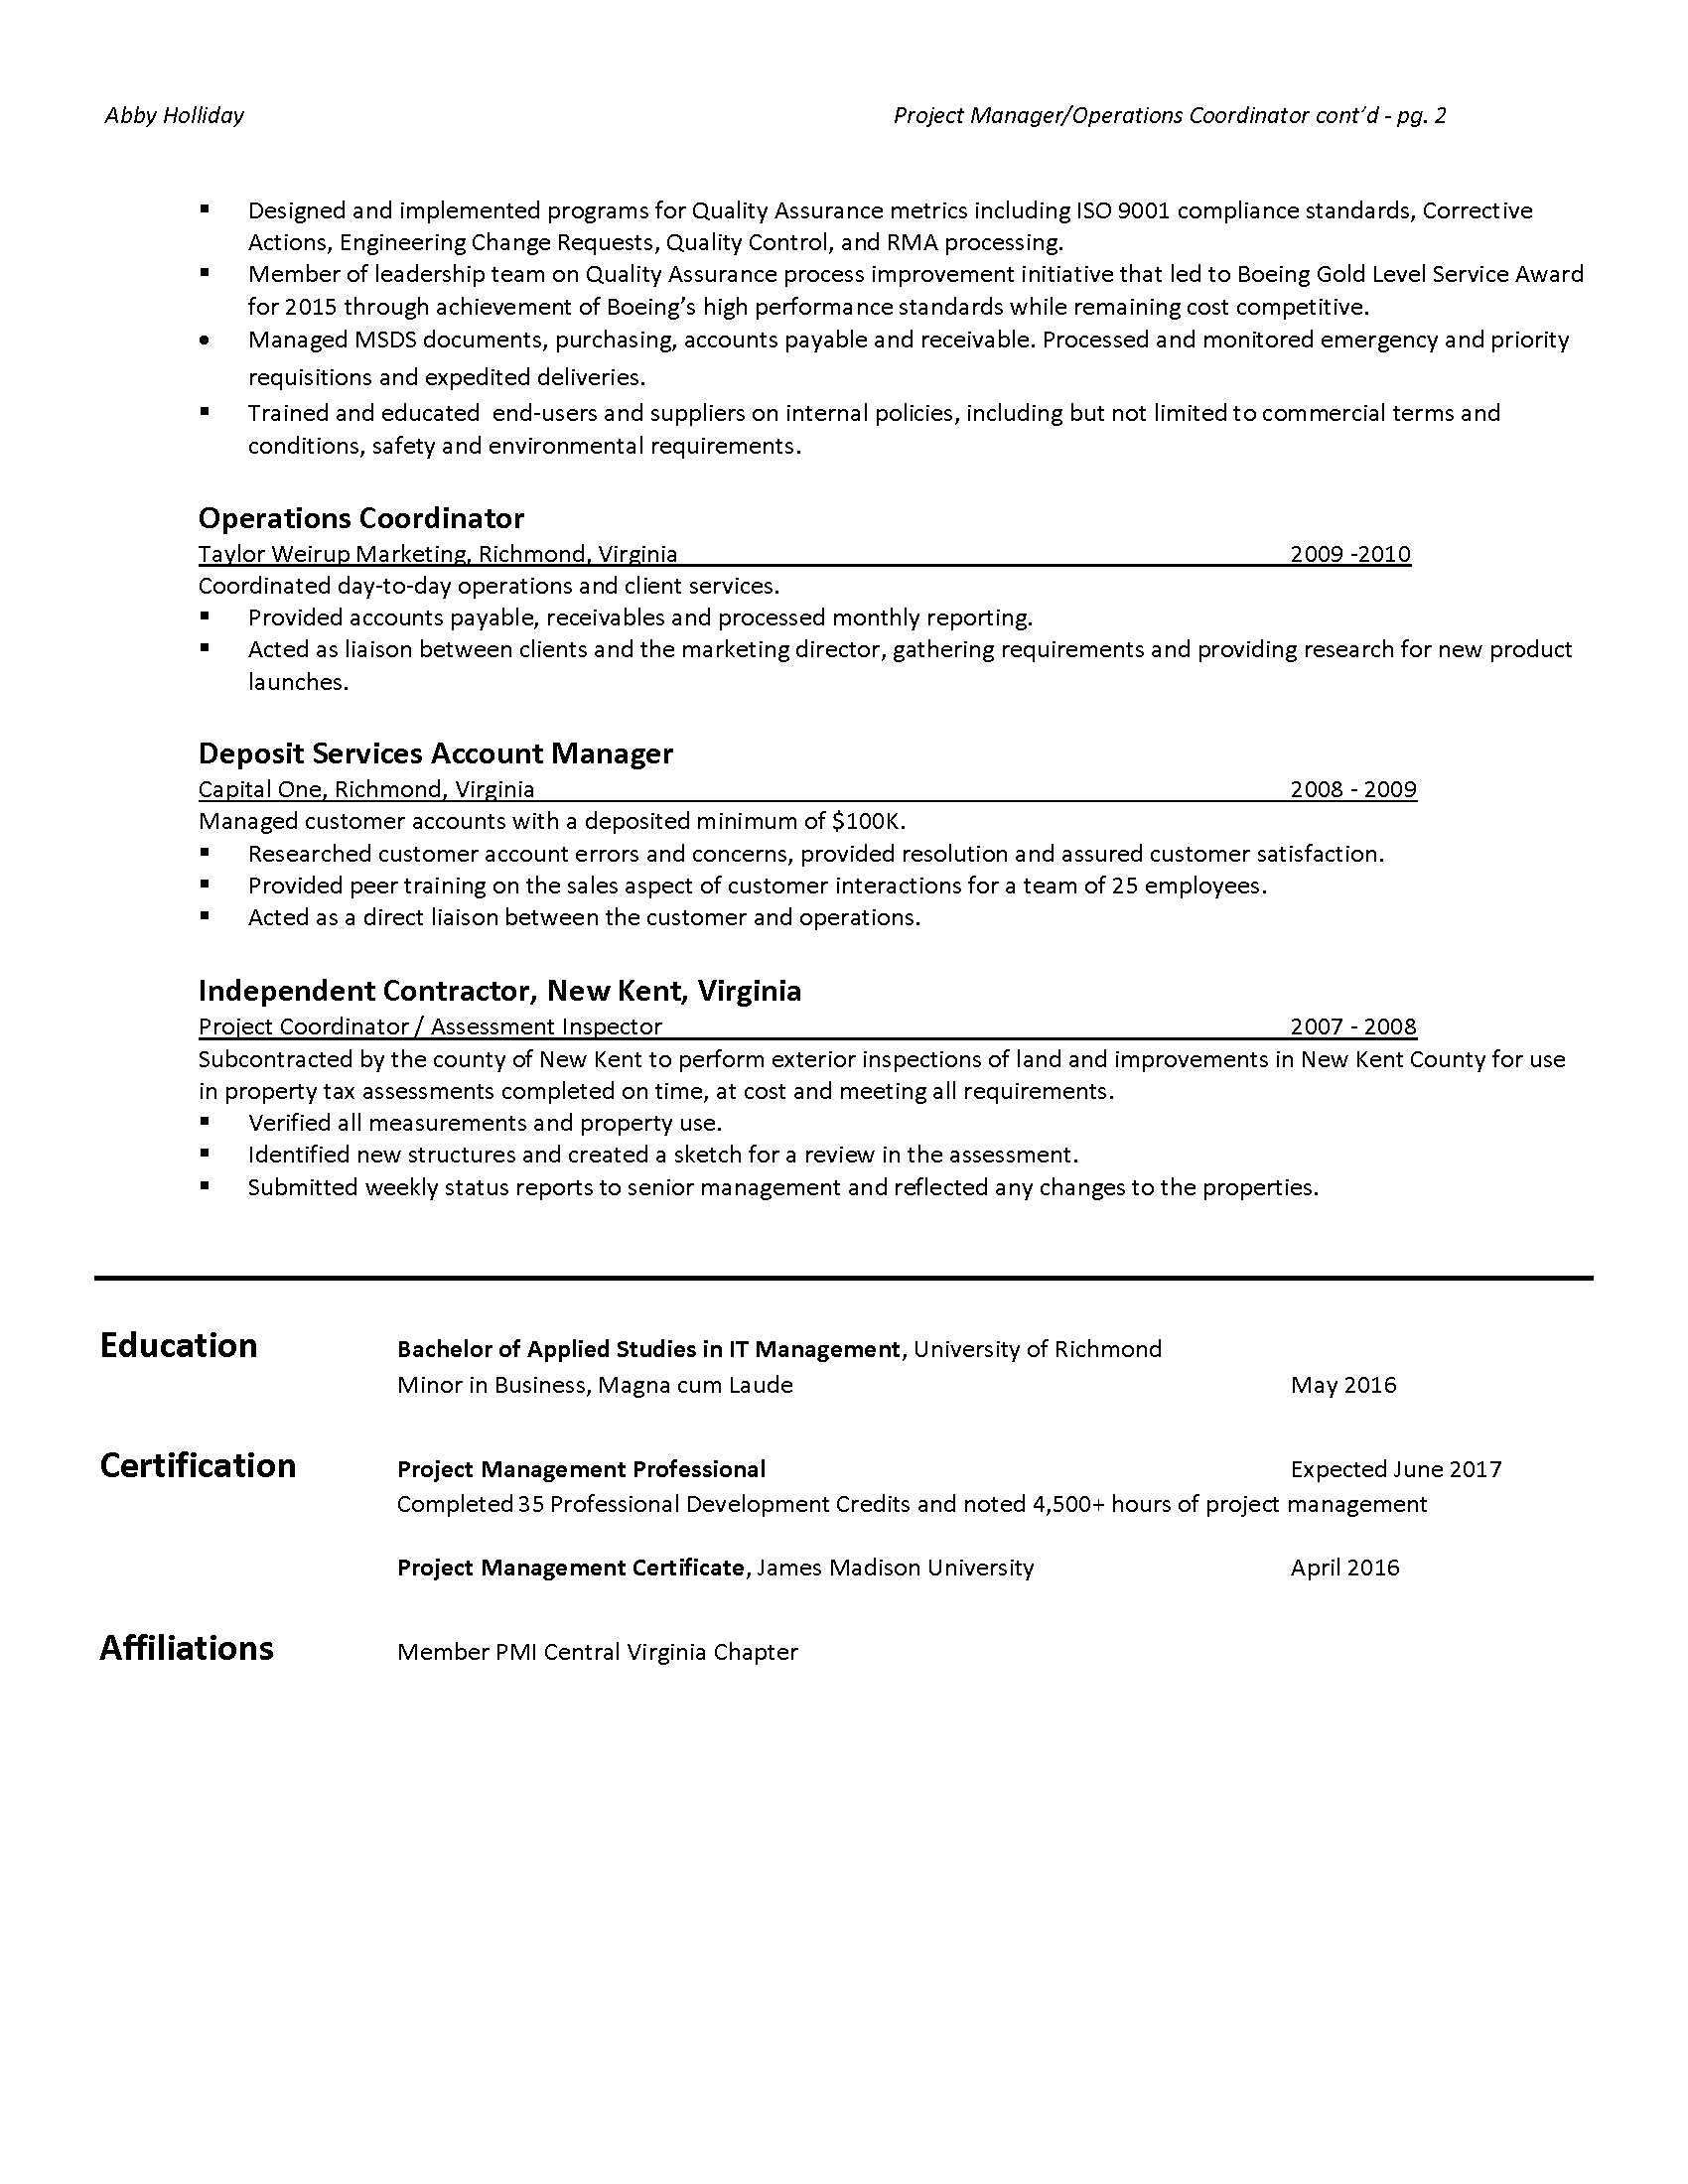 resumes cvs and cover letters pulp indigo